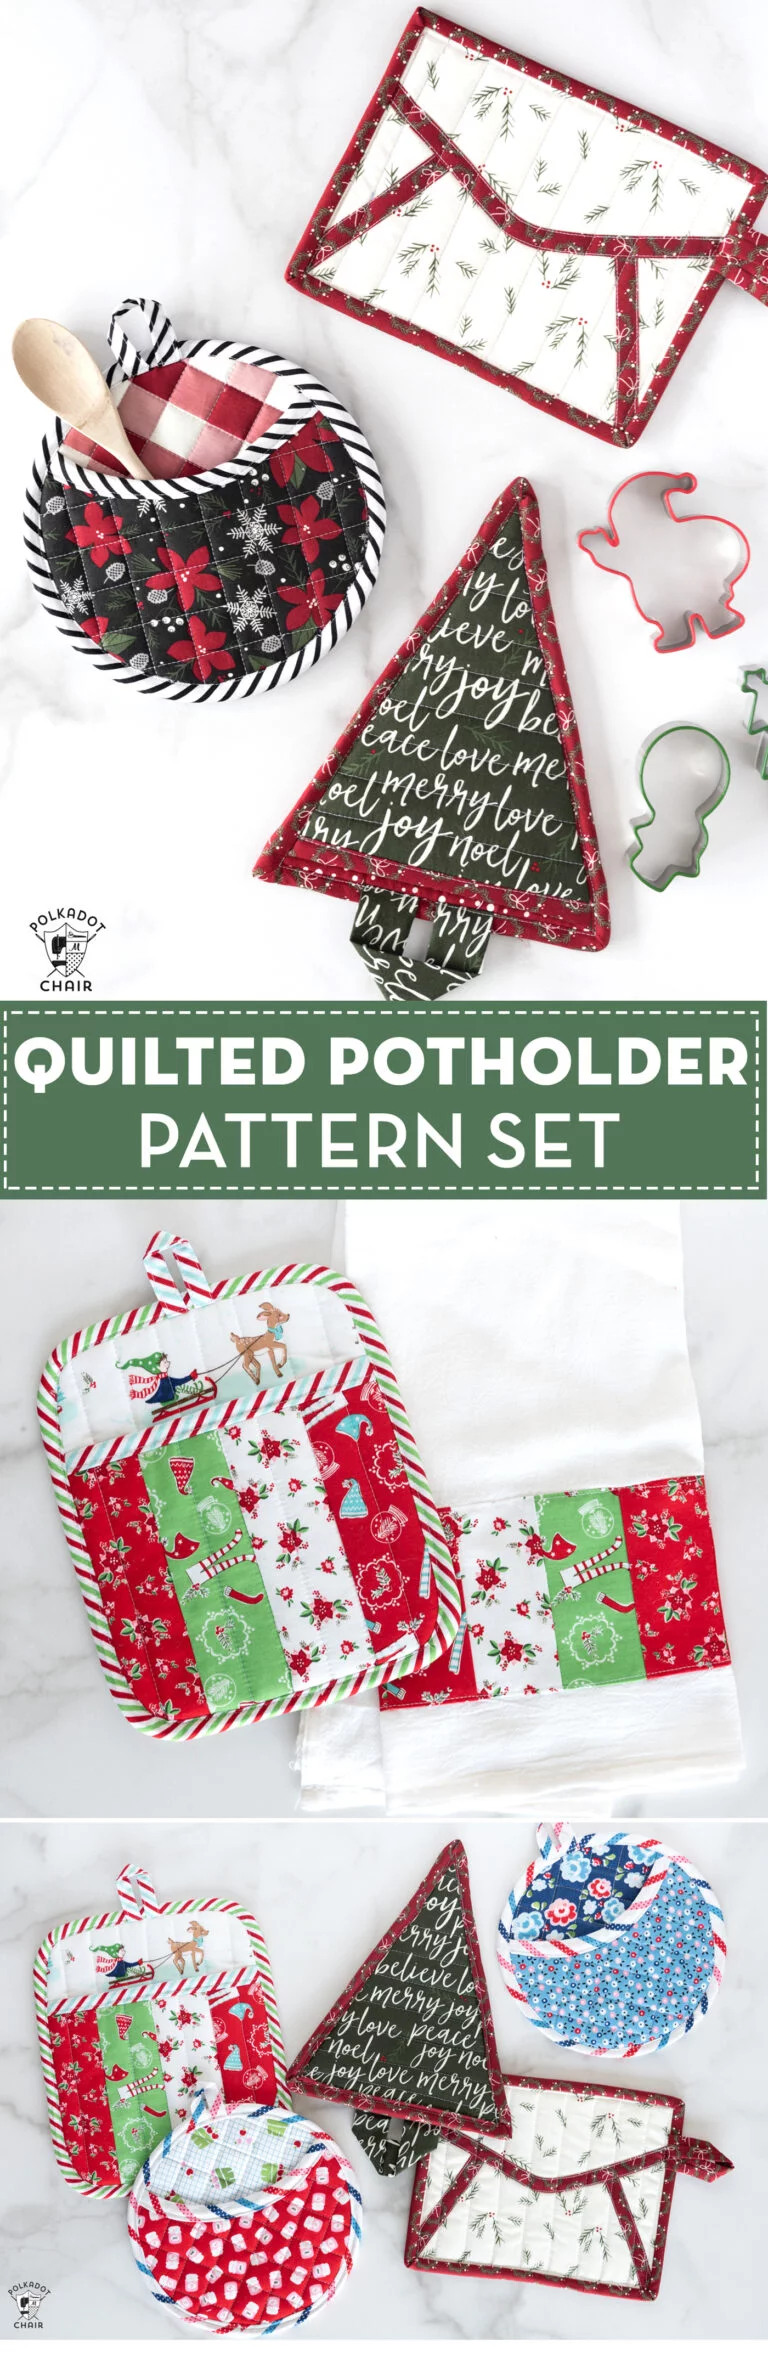 Quilted Christmas Potholder Pattern #potholders